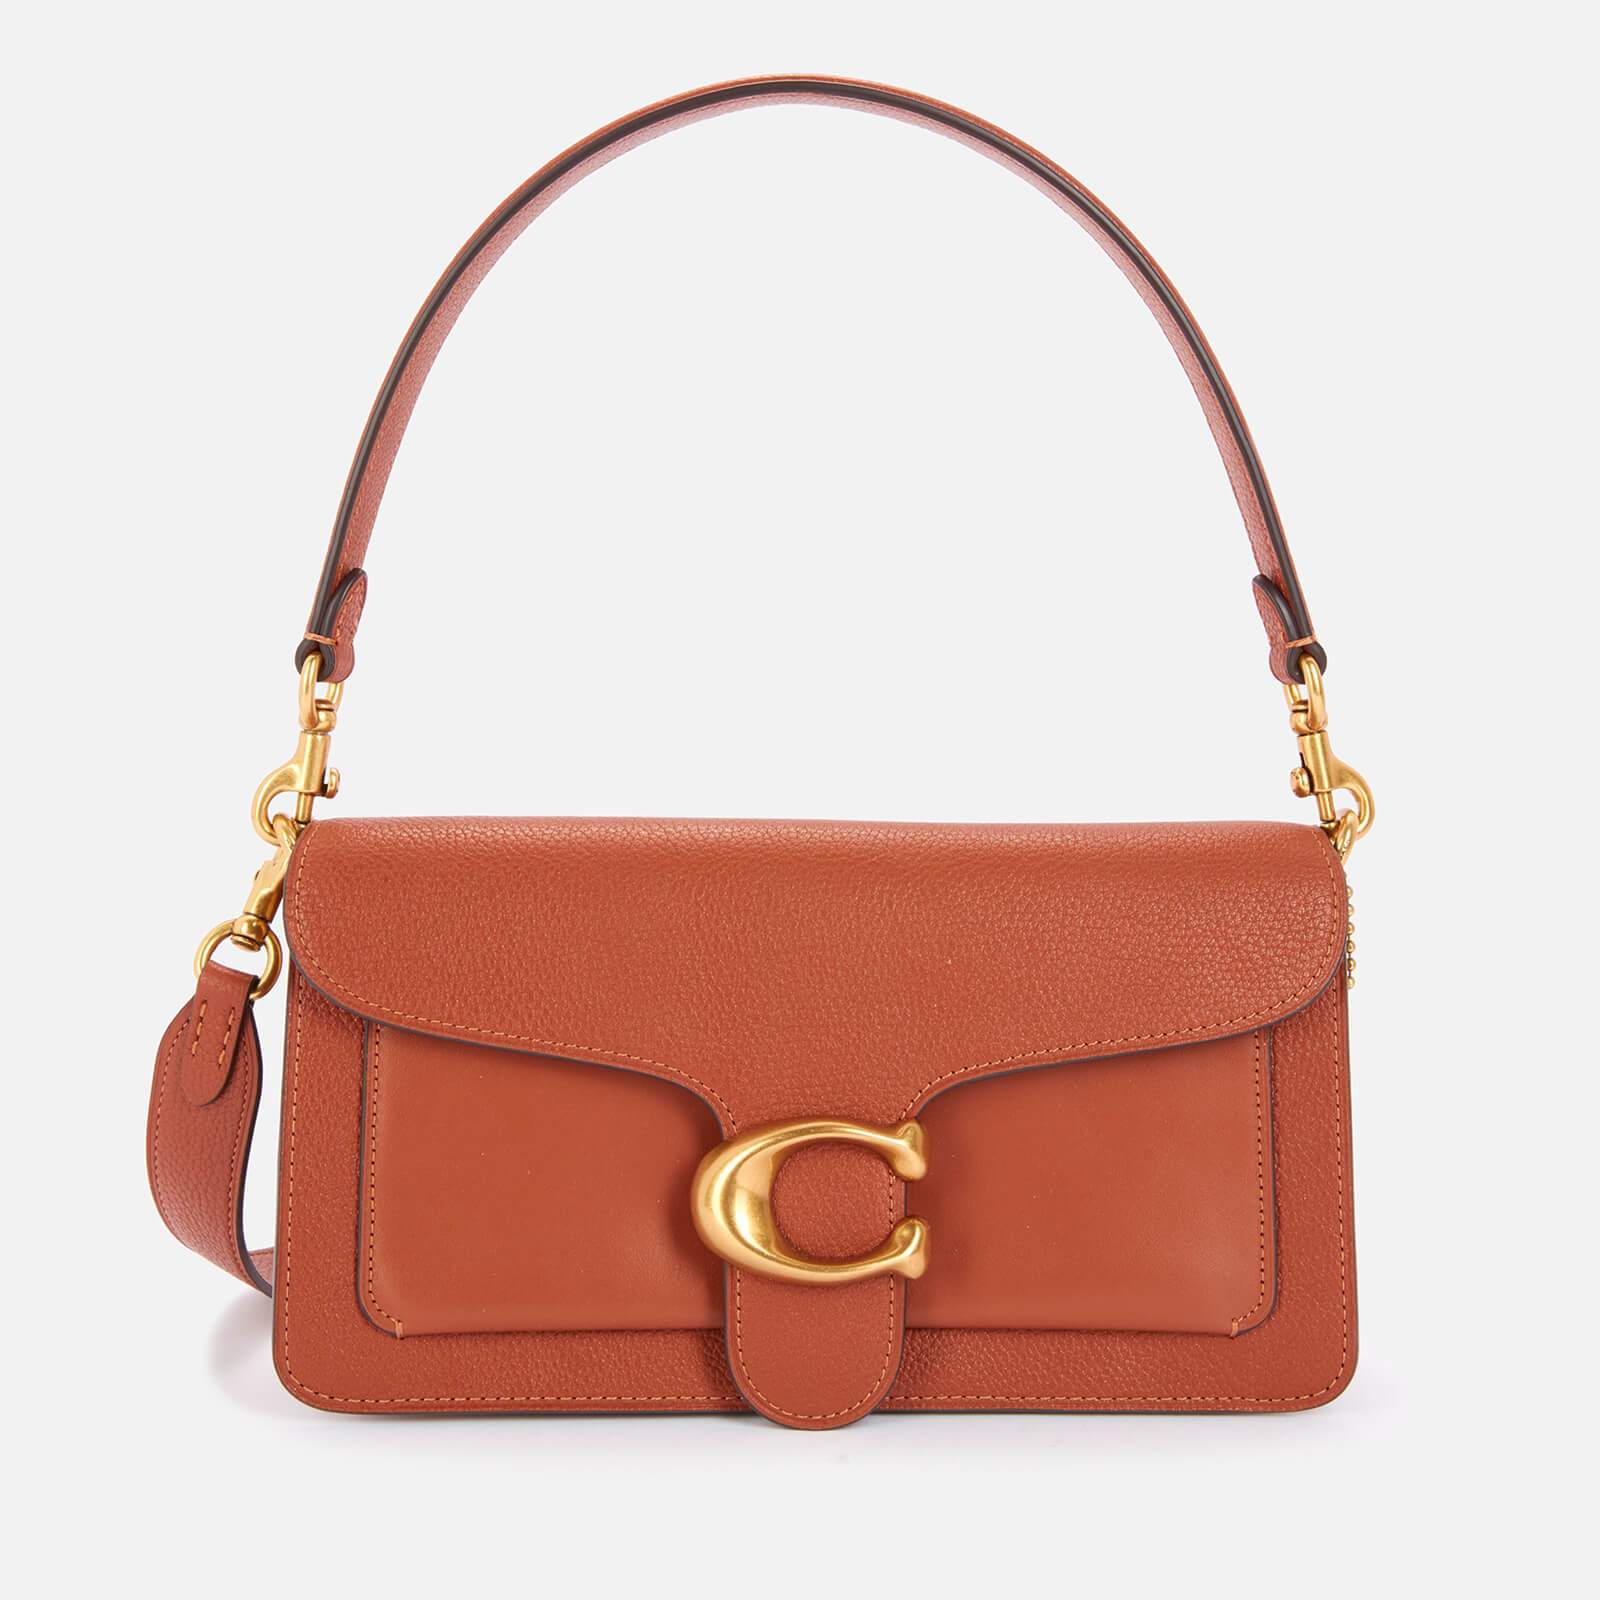 Coach Women's Mixed Leather Tabby Shoulder Bag 26 - Saddle